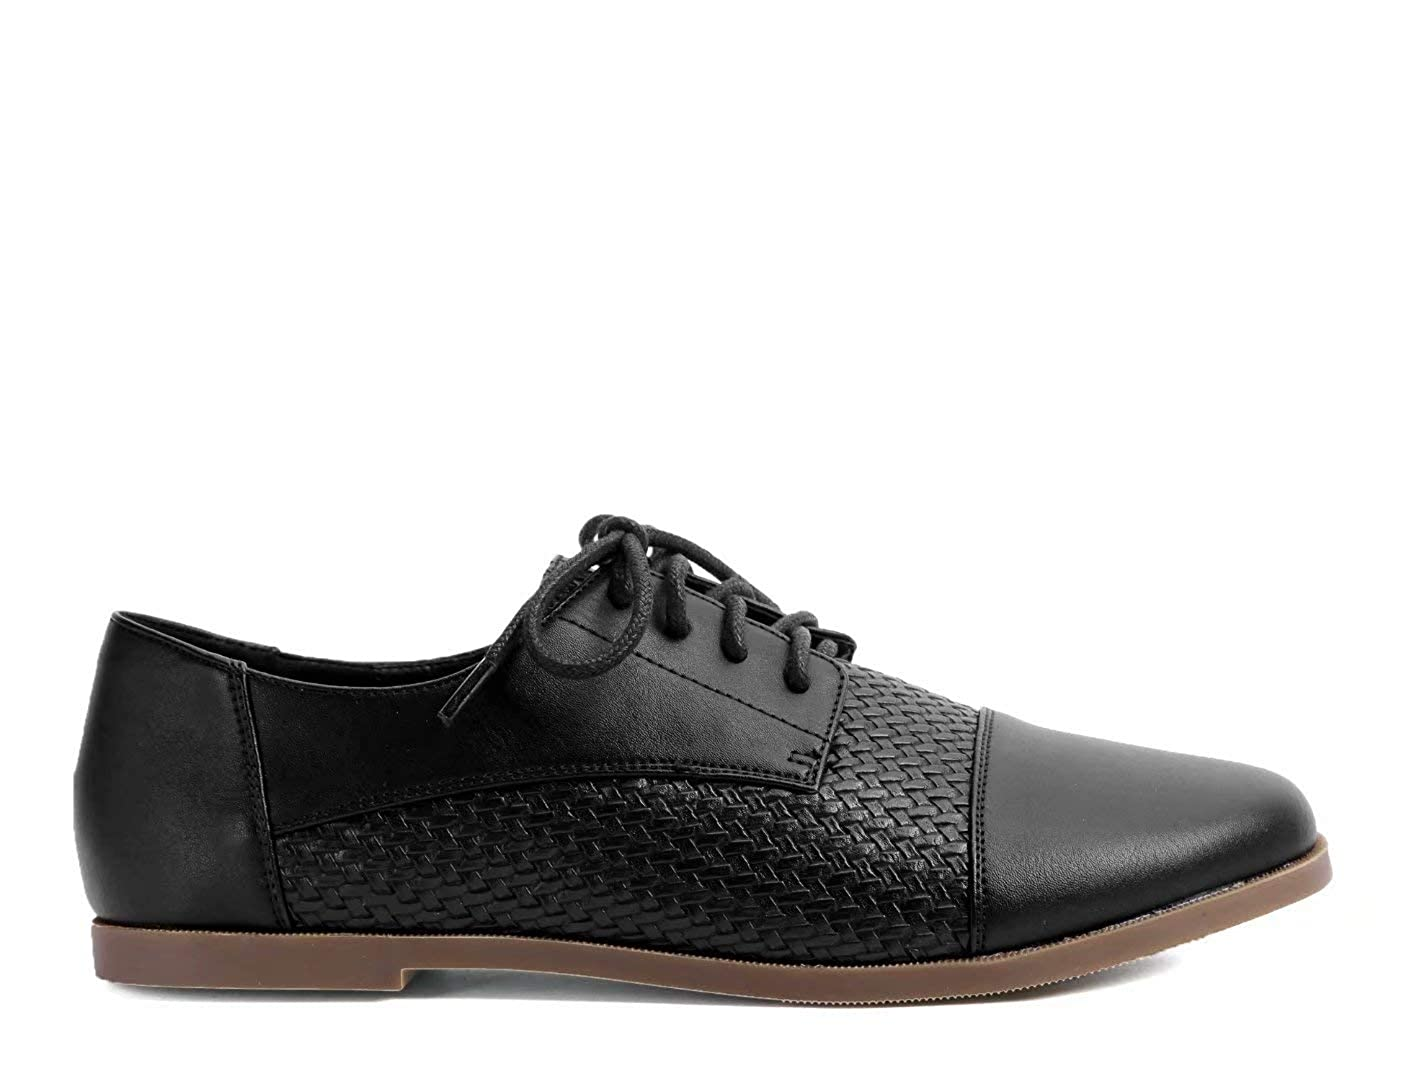 Greatonu Womens Brogues Shoes Lace Up Flats Derby Shoes Oxfords